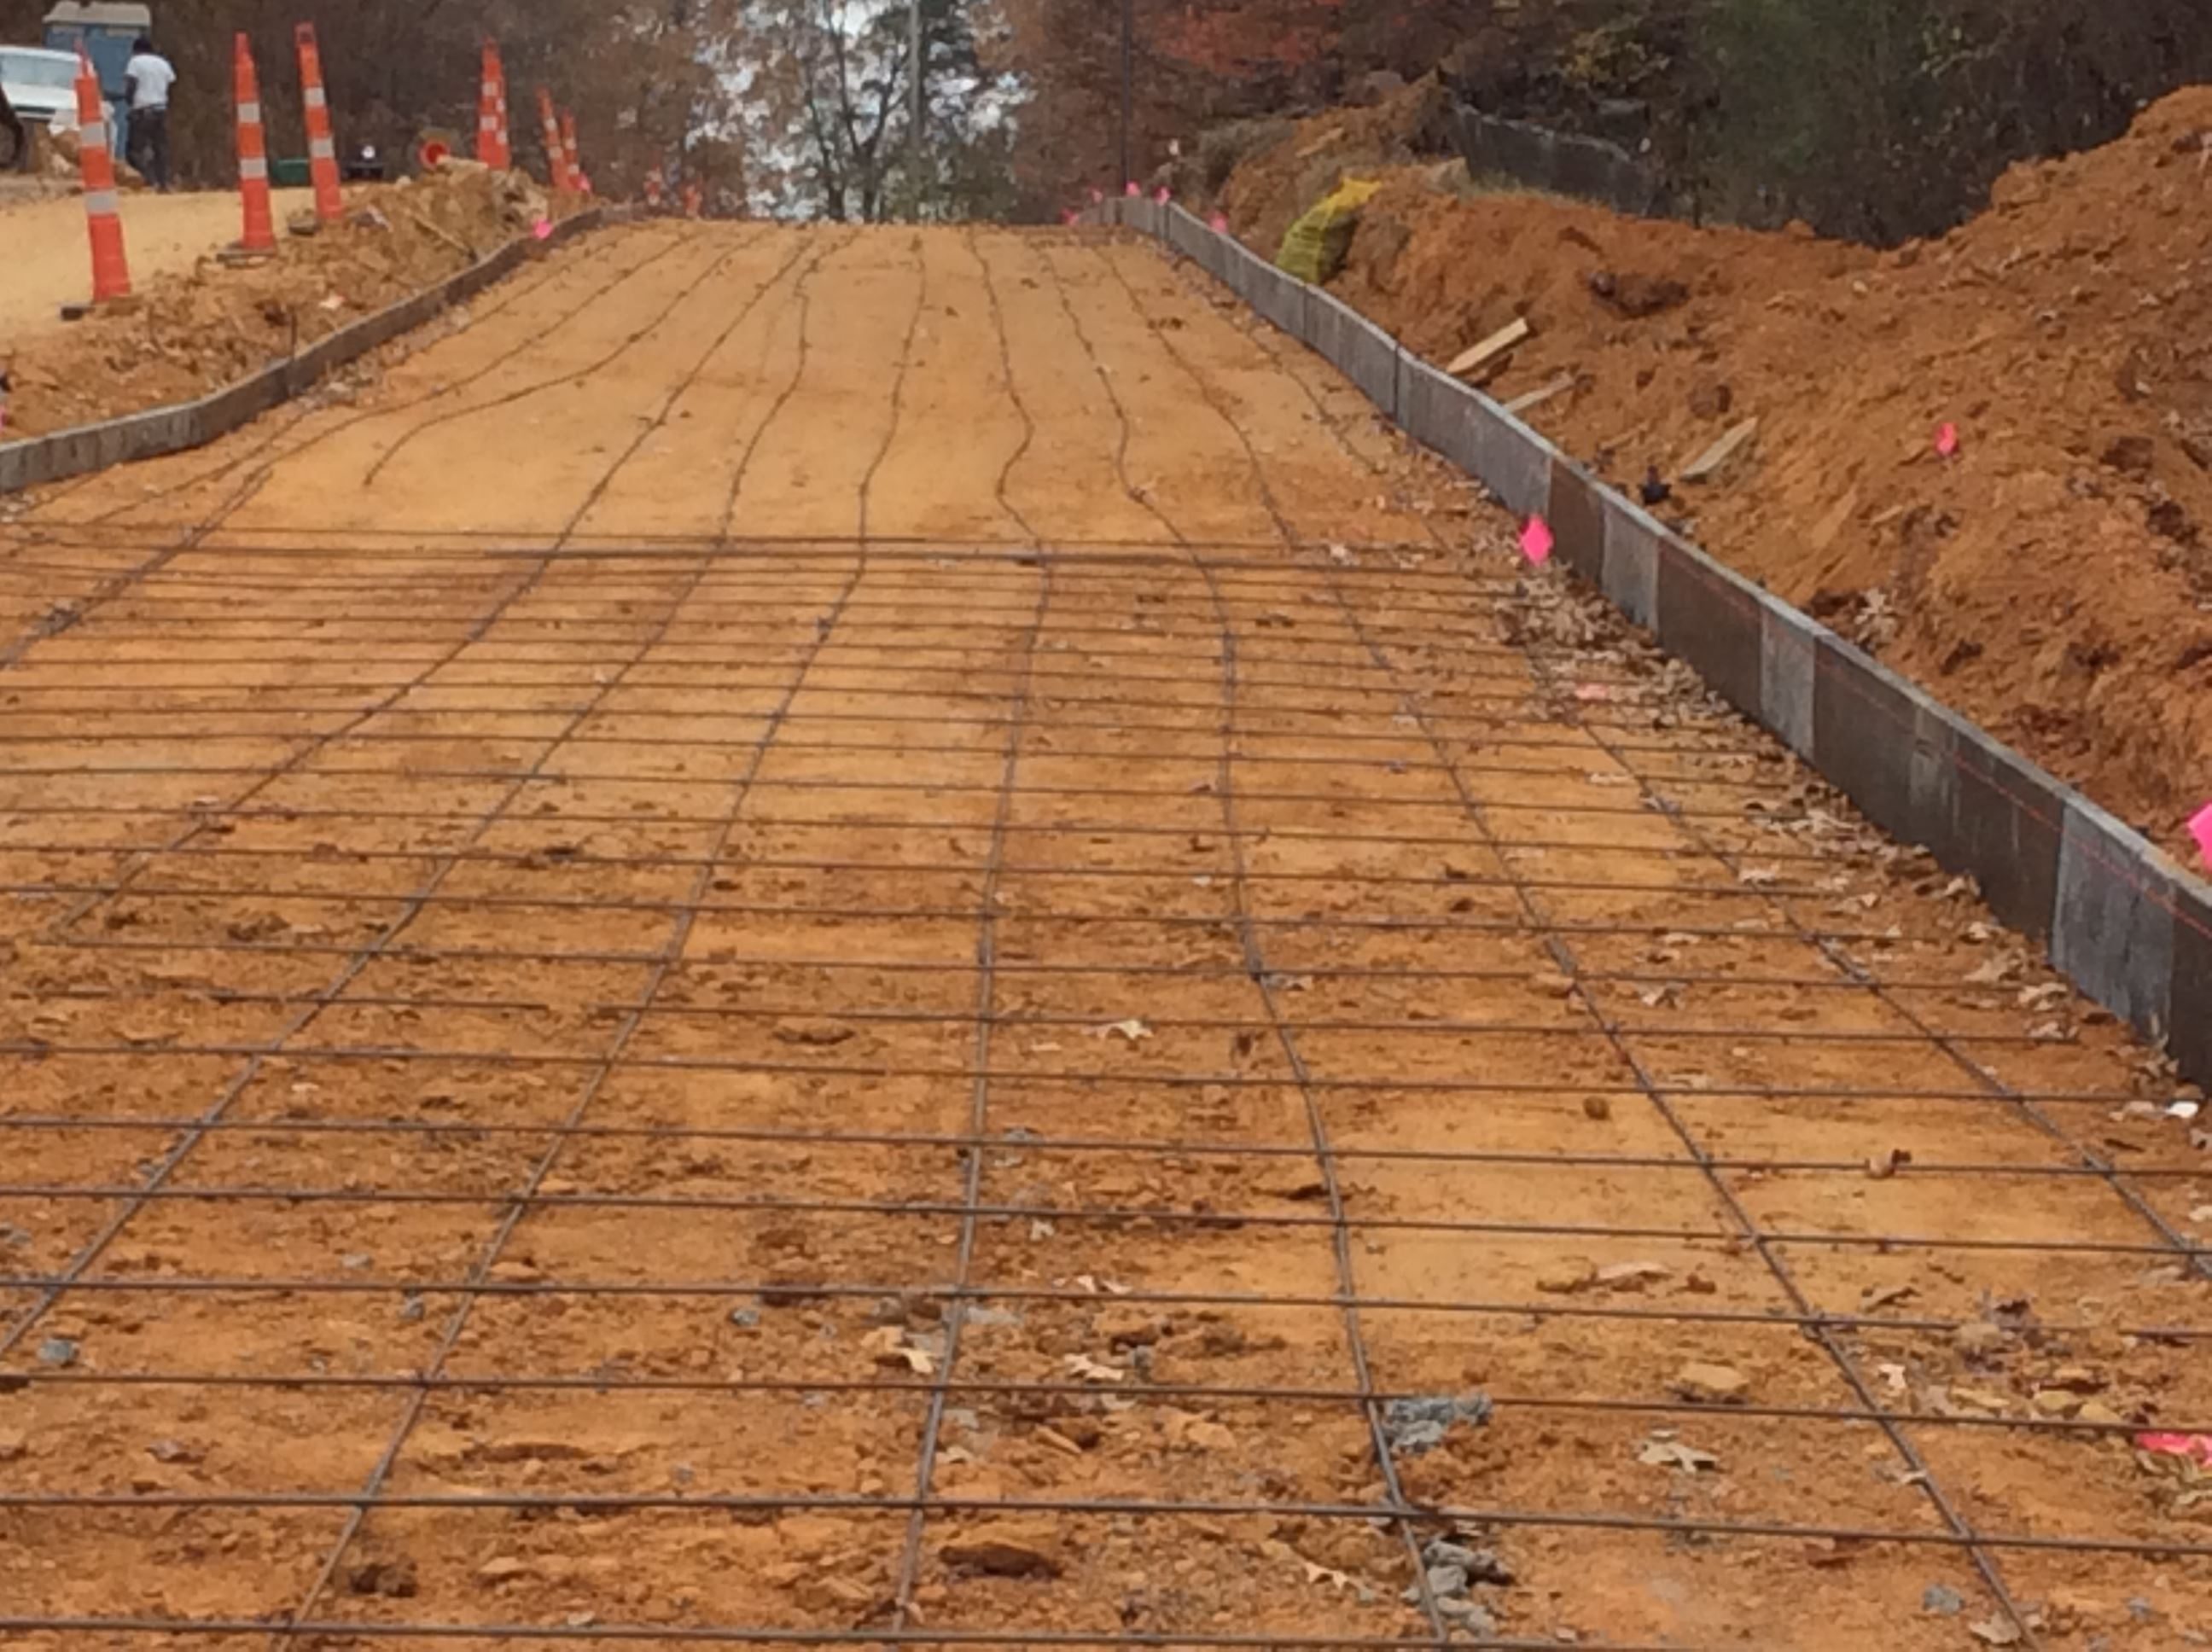 Metal wiring outlining where road will be paved